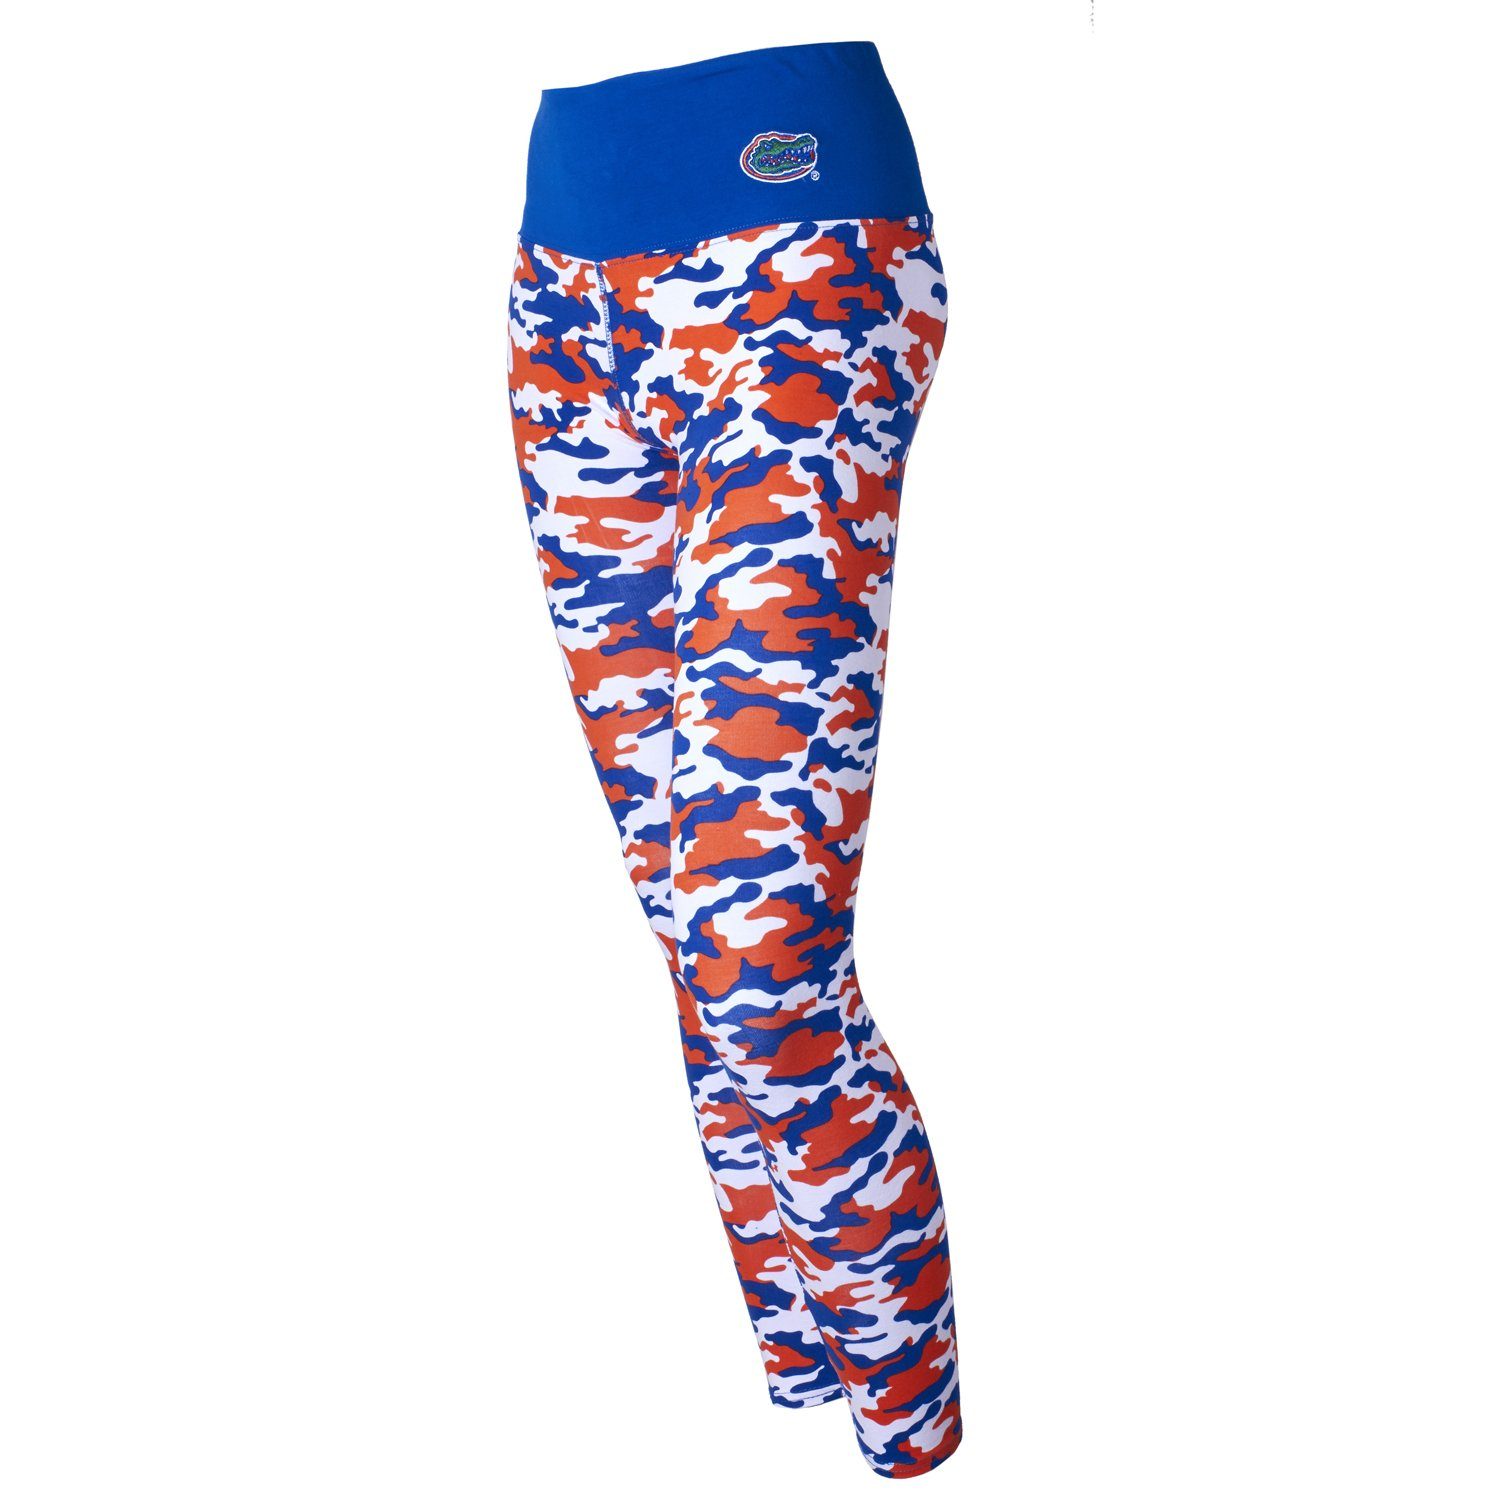 391c9410f5352 TEAM SPIRIT: Proudly show your collegiate spirit with these fun printed  leggings, available in a variety of universit colors. Make a bold statement  at the ...